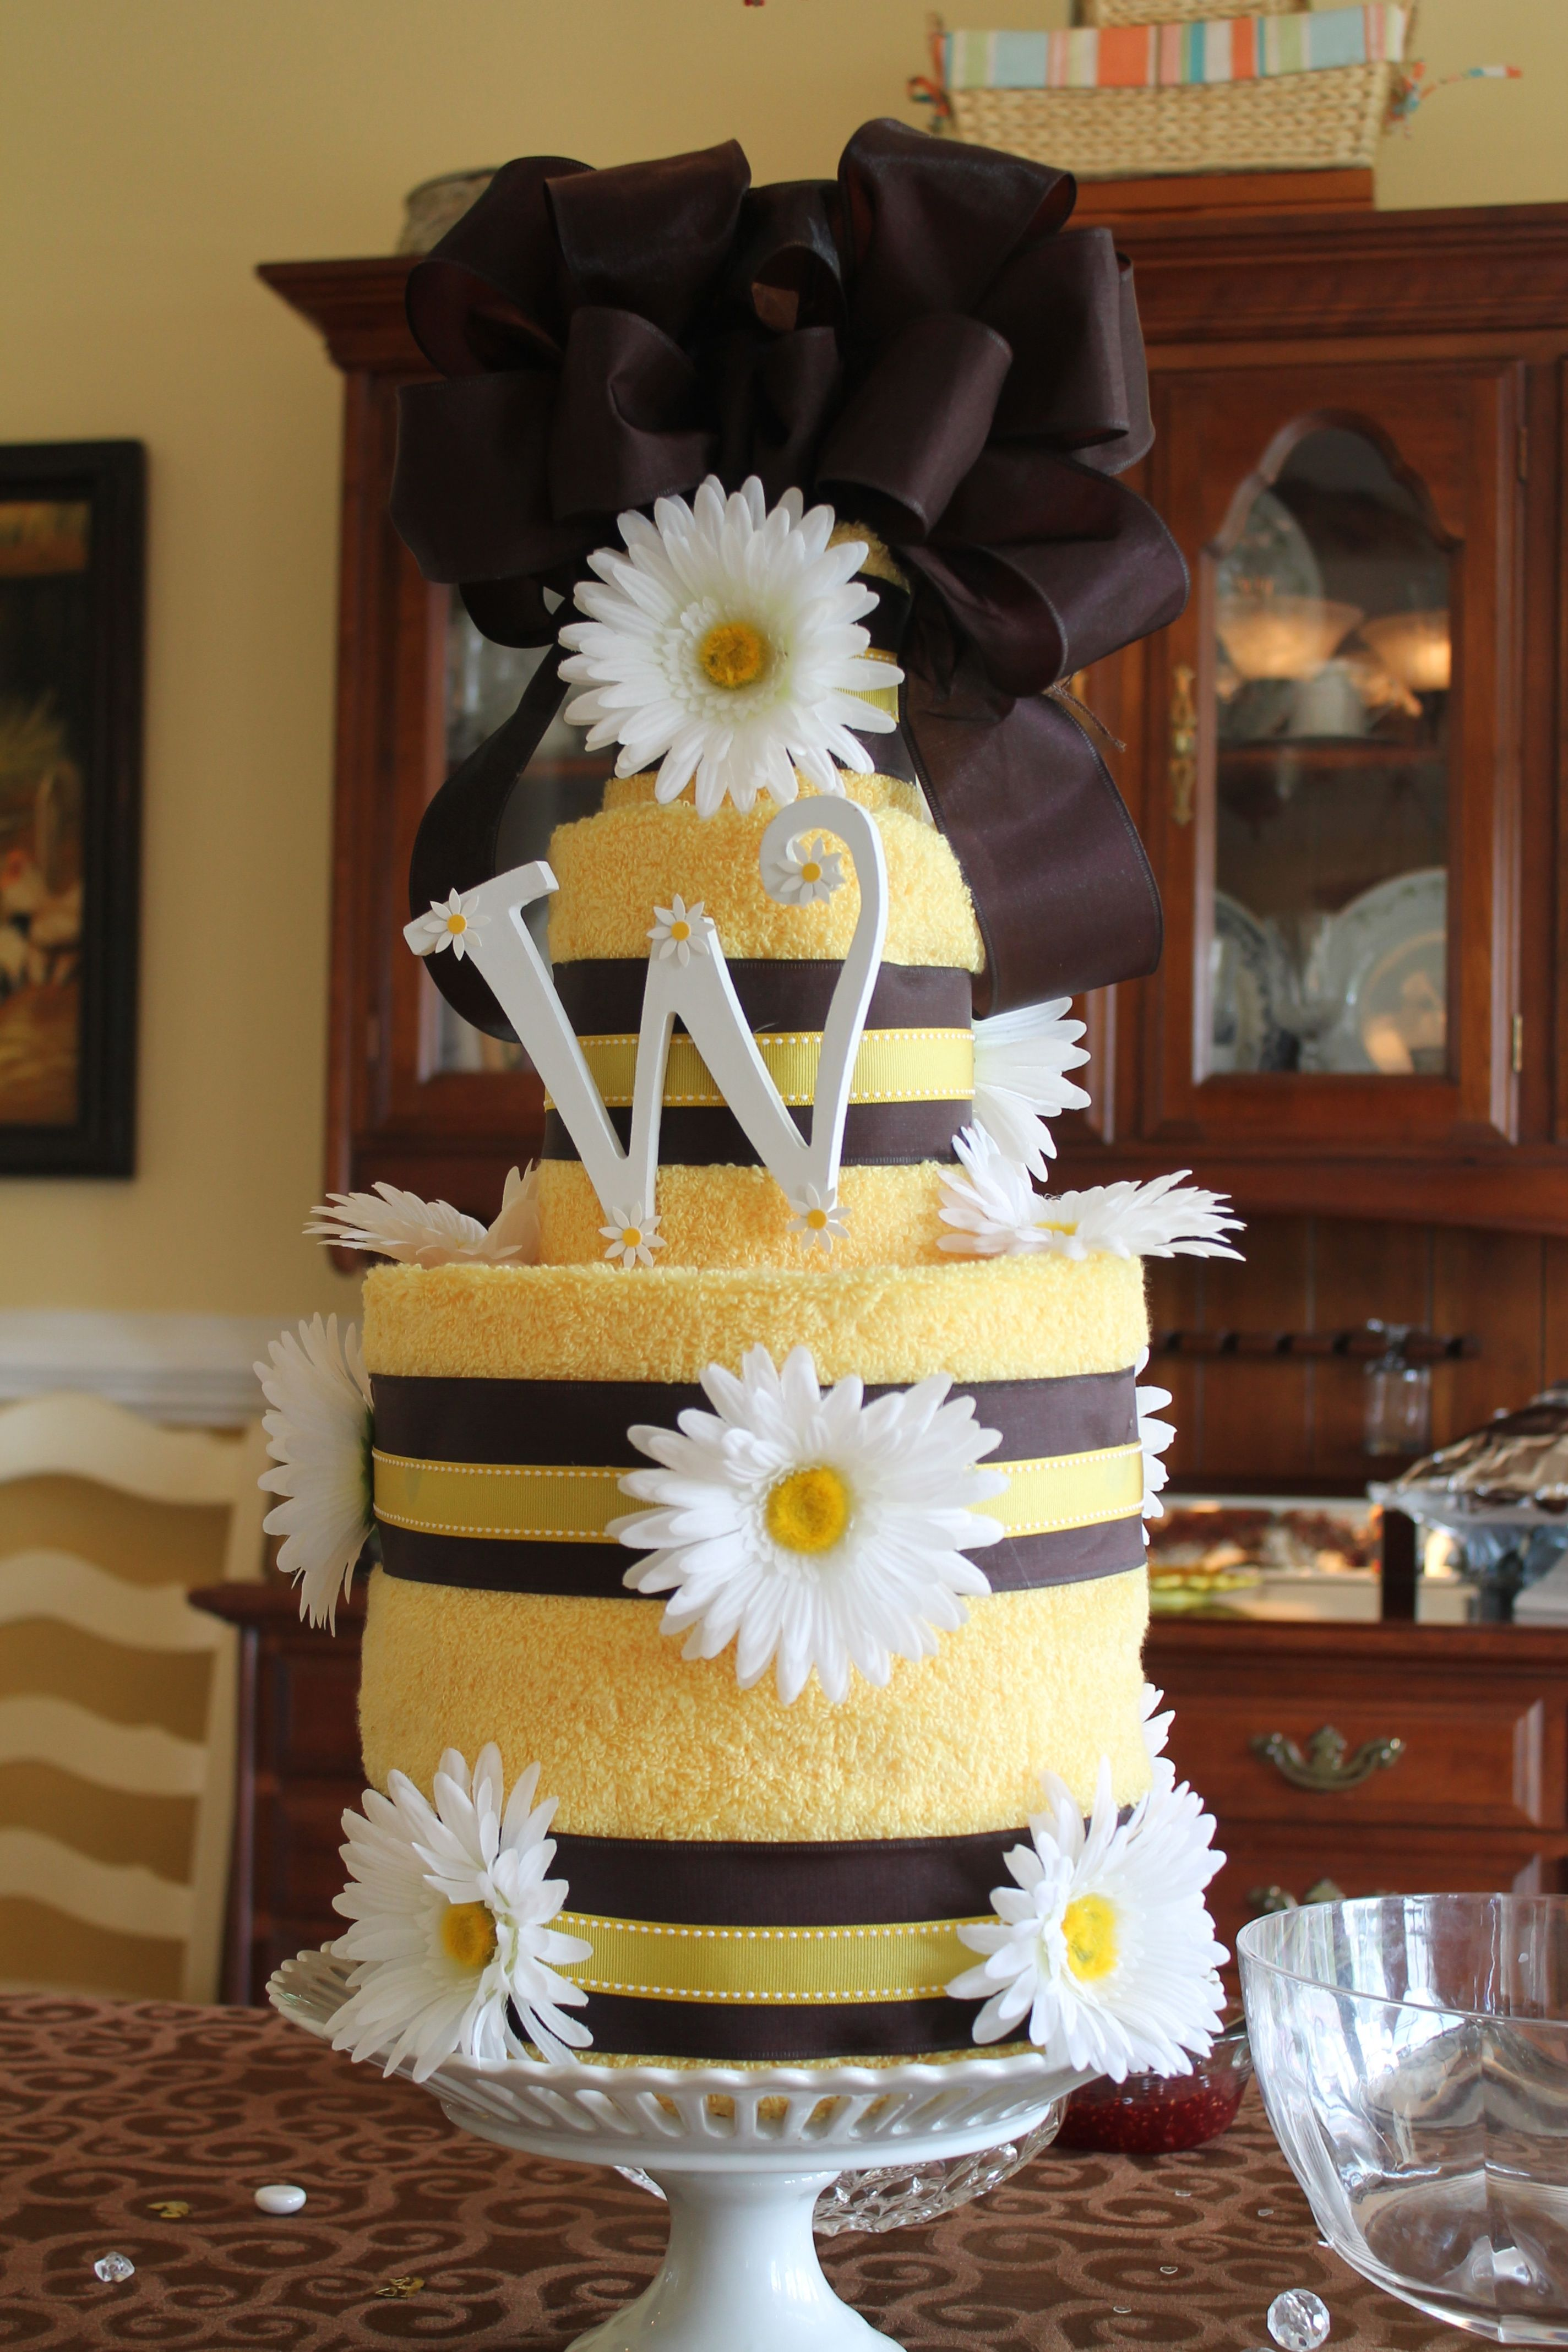 Towel Cake for a sunflower and daisy themed bridal shower